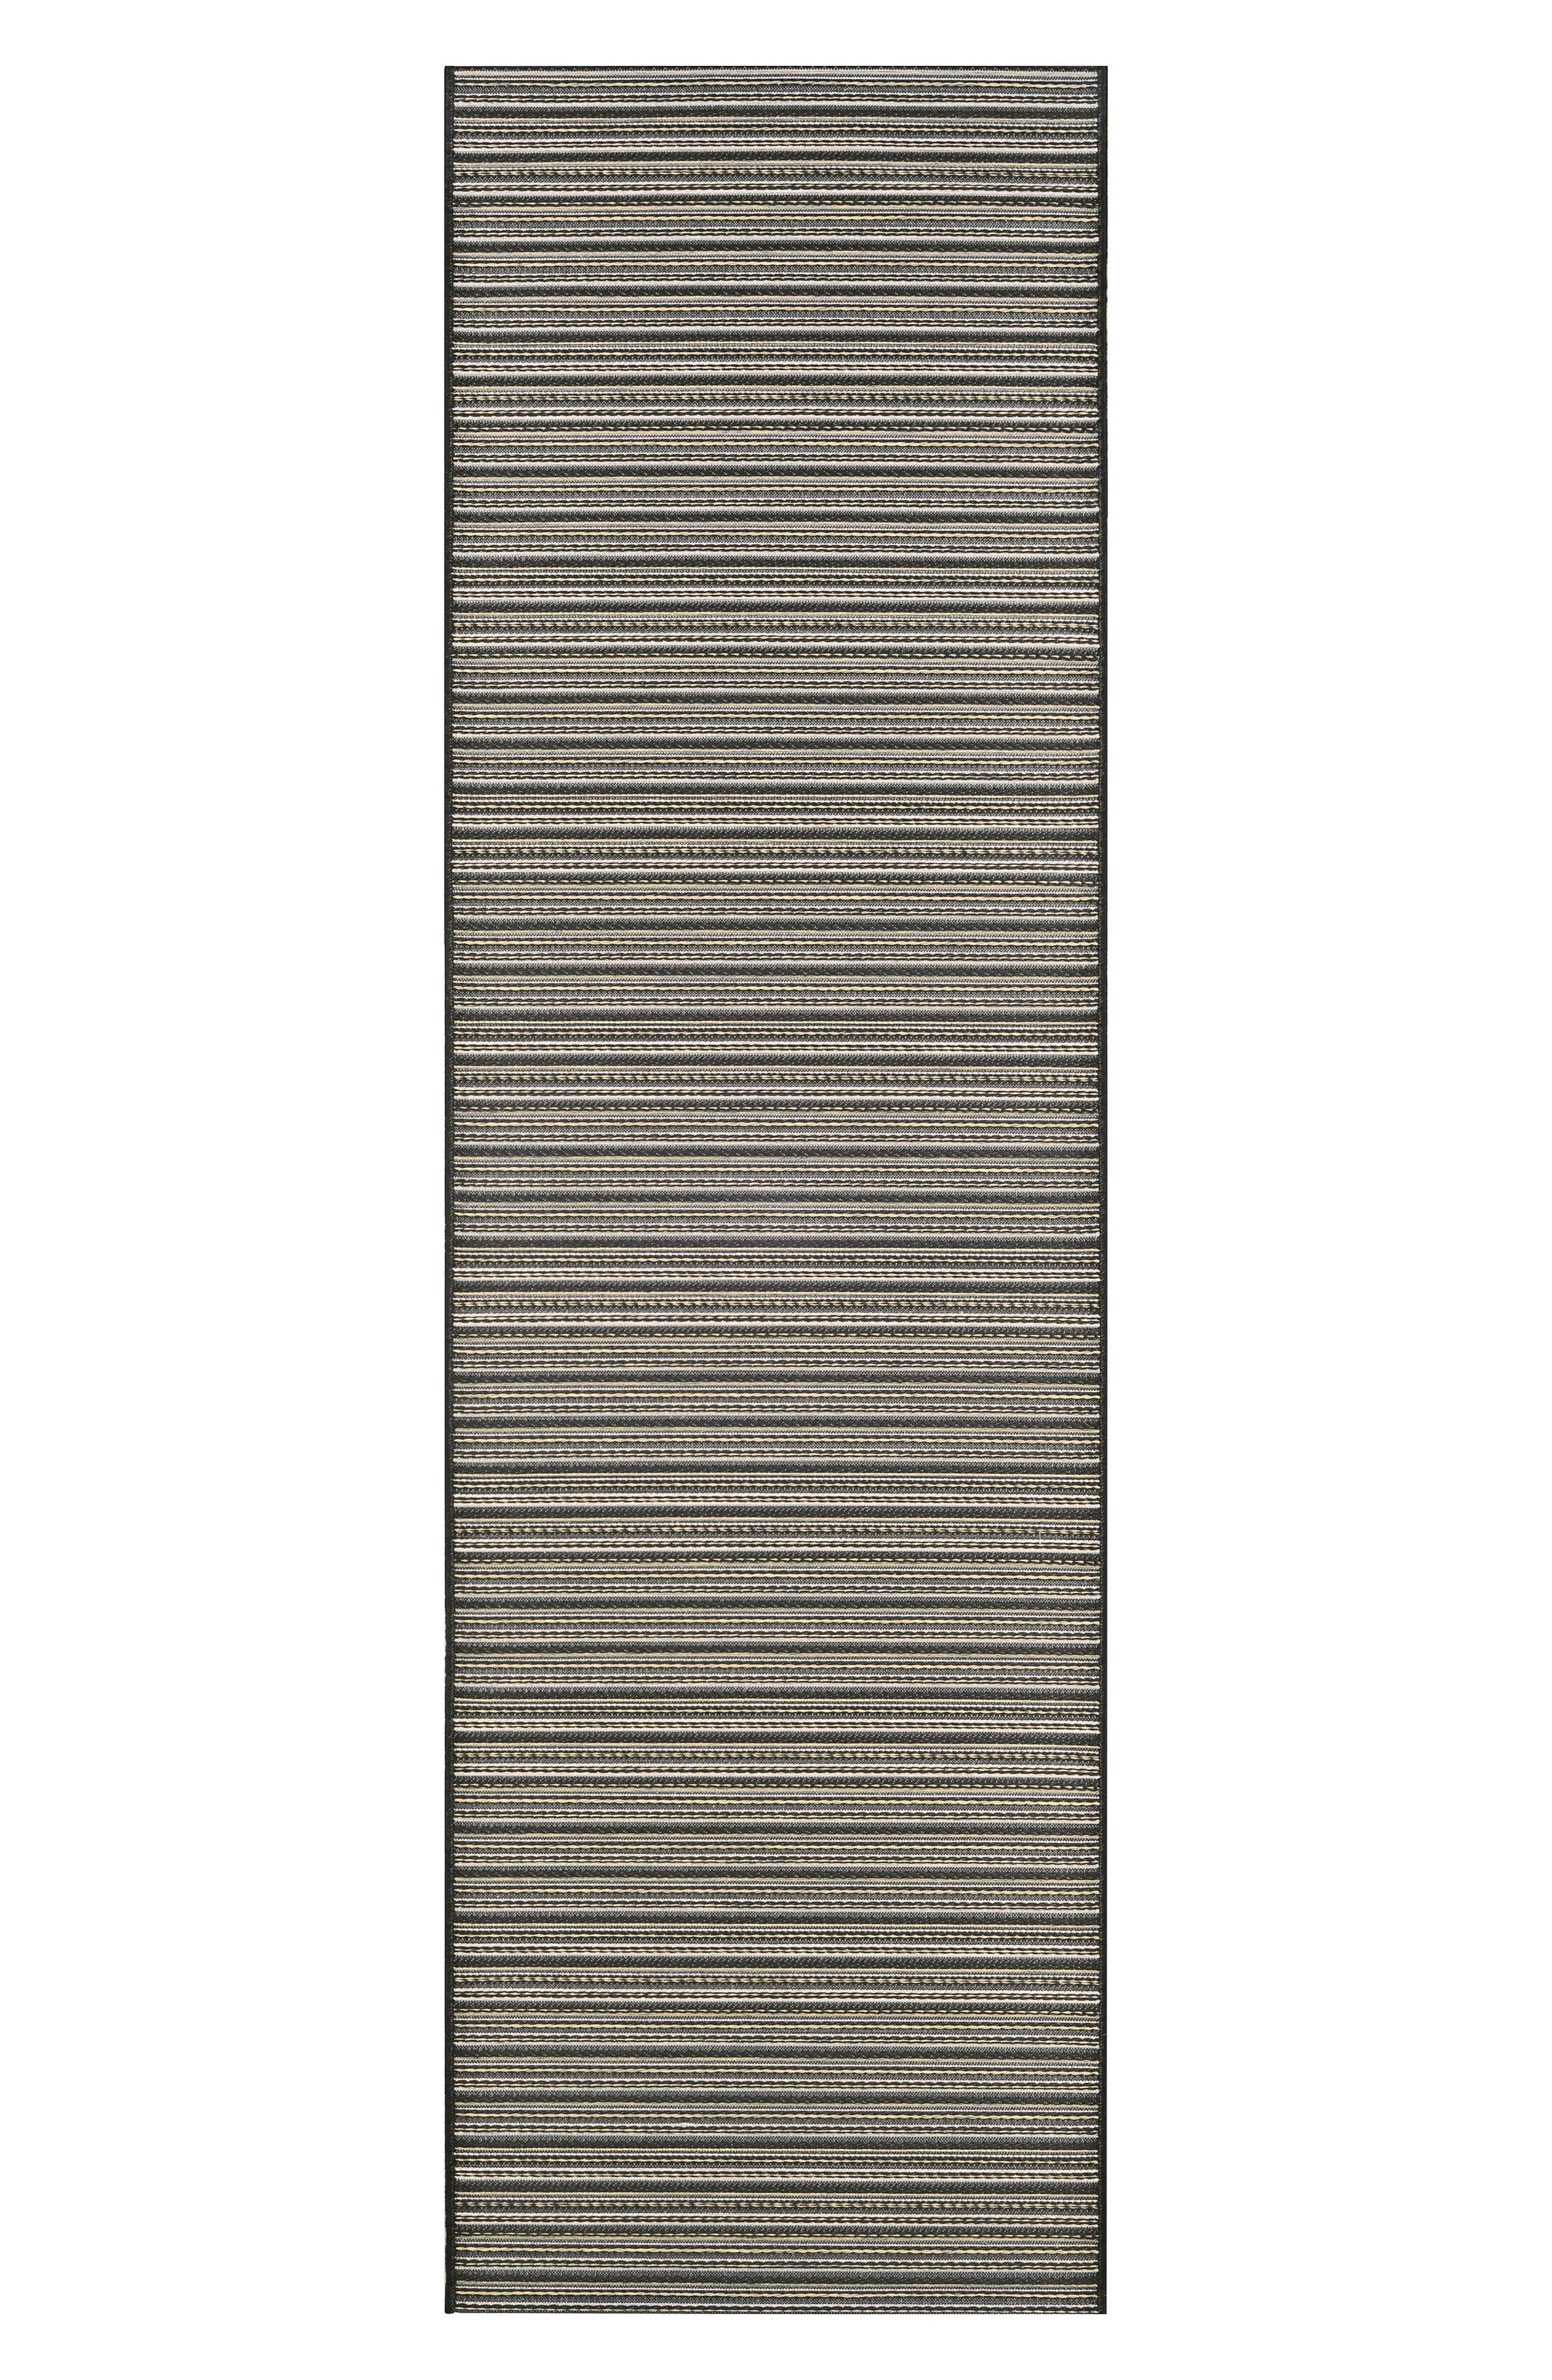 Harwich Indoor/Outdoor Rug,                             Alternate thumbnail 2, color,                             Black/ Tan